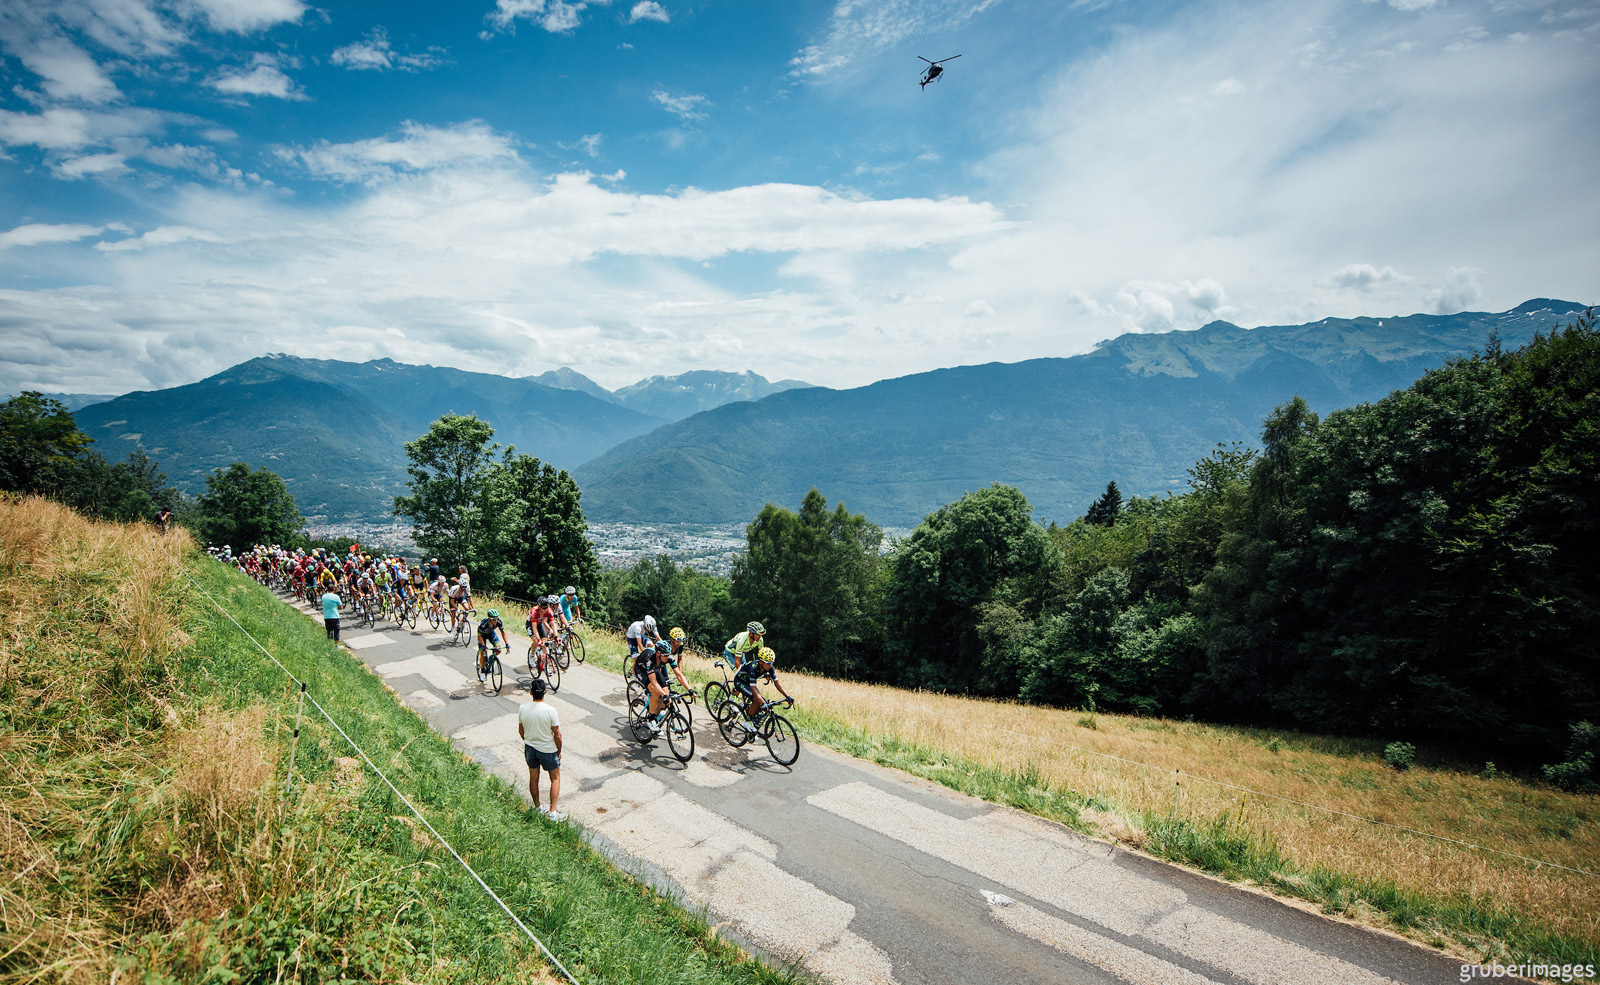 The peloton climbs the Col de Tamié on stage 19 of the 2016 Tour de France, July 22, running from Albertville - Saint-Gervais Mont Blanc. Photo by Gruber Images